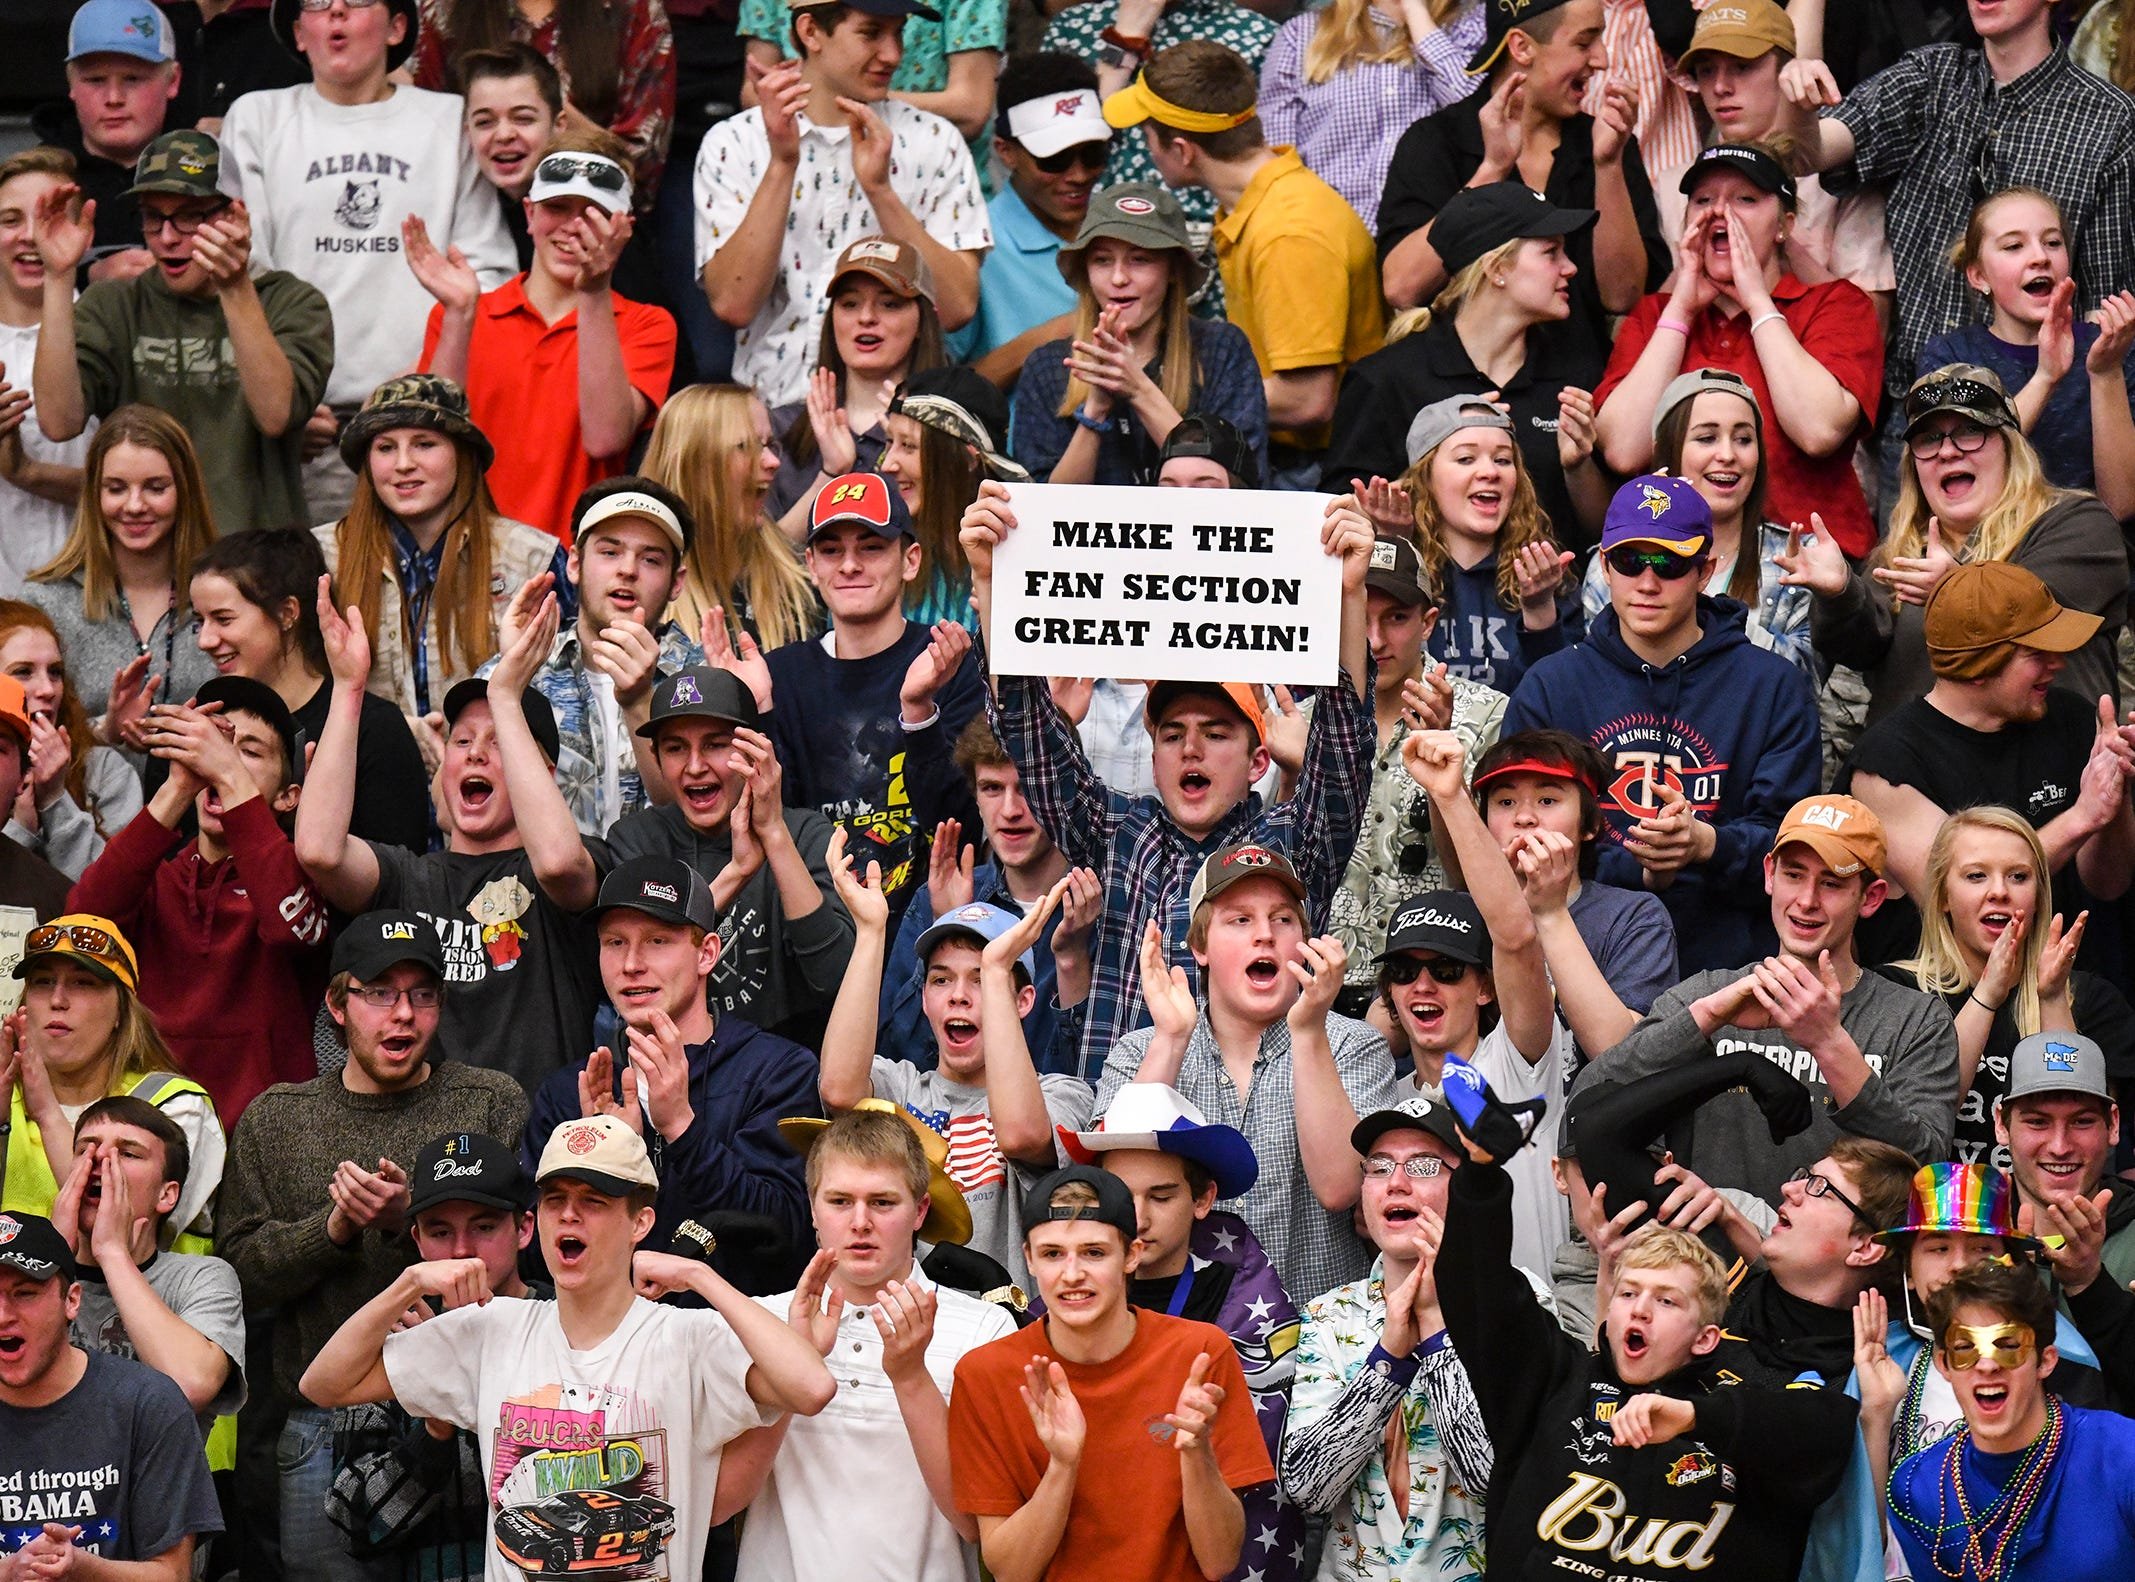 The Albany student section cheers for their team during the Section 6-2A championship game against Pine City Friday, March 8, at Halenbeck Hall in St. Cloud.